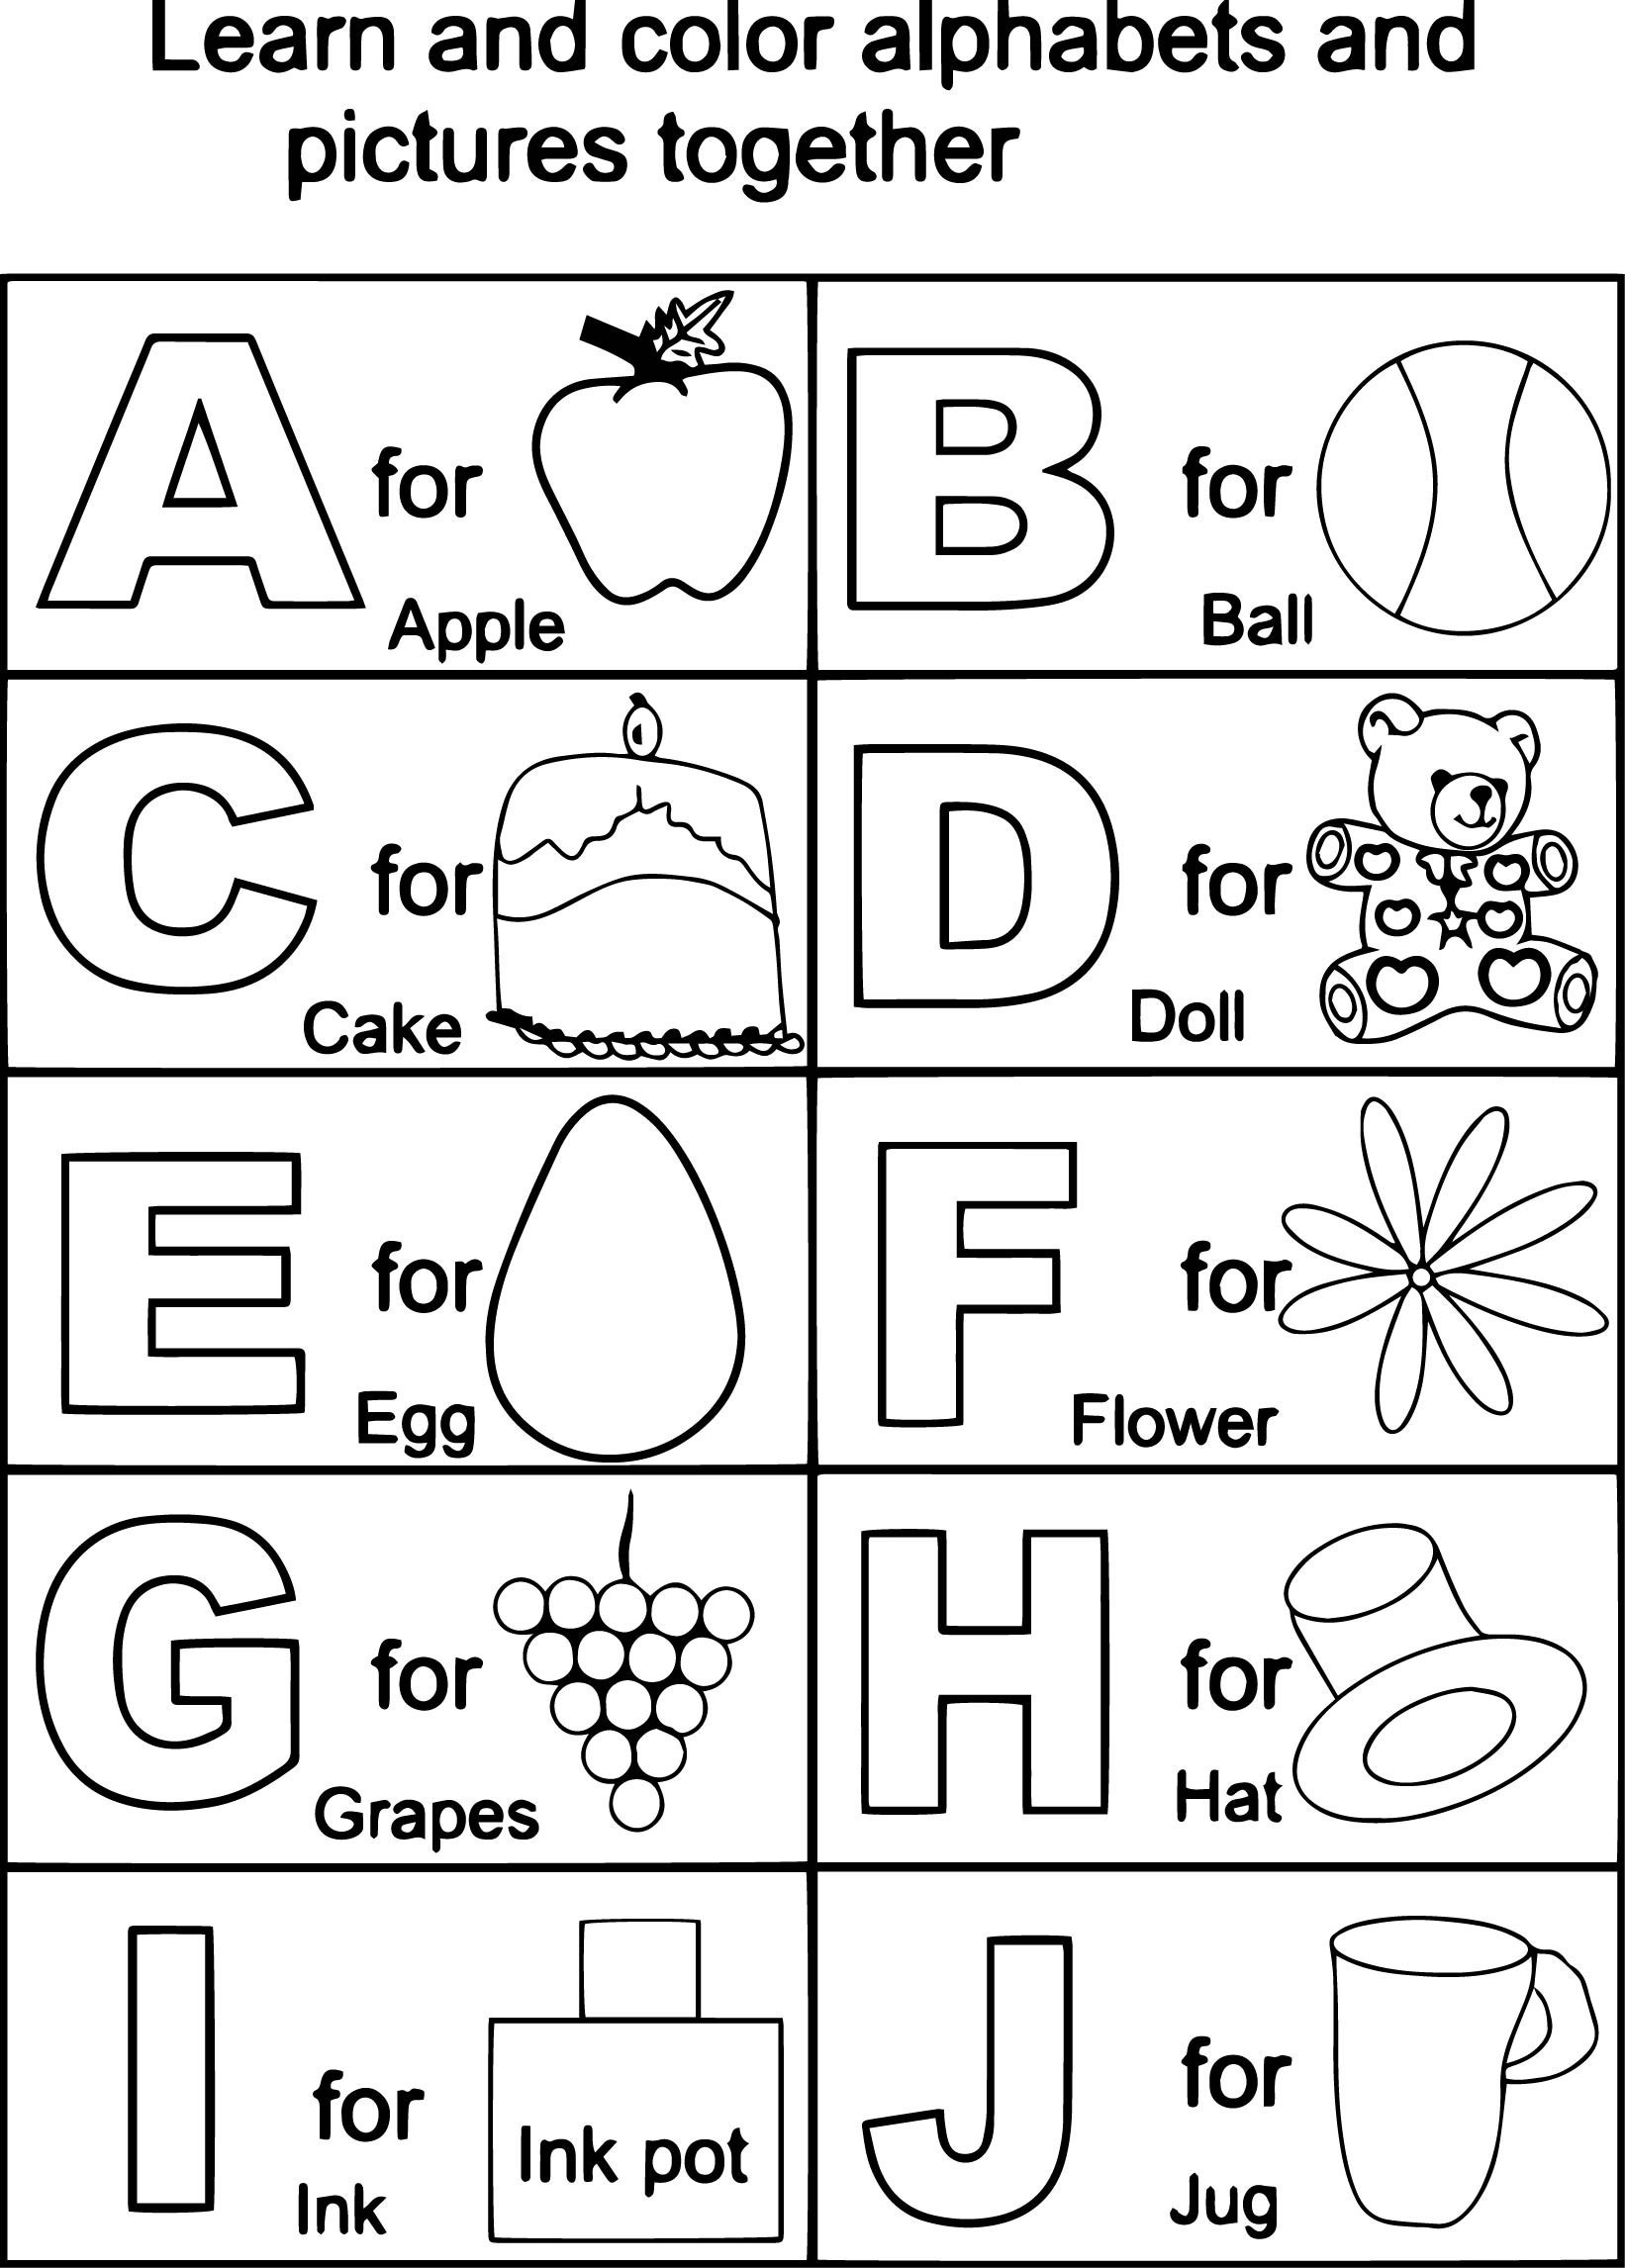 Lovely Free Alphabet Coloring Pages | Coloring Pages - Free Printable Alphabet Coloring Pages